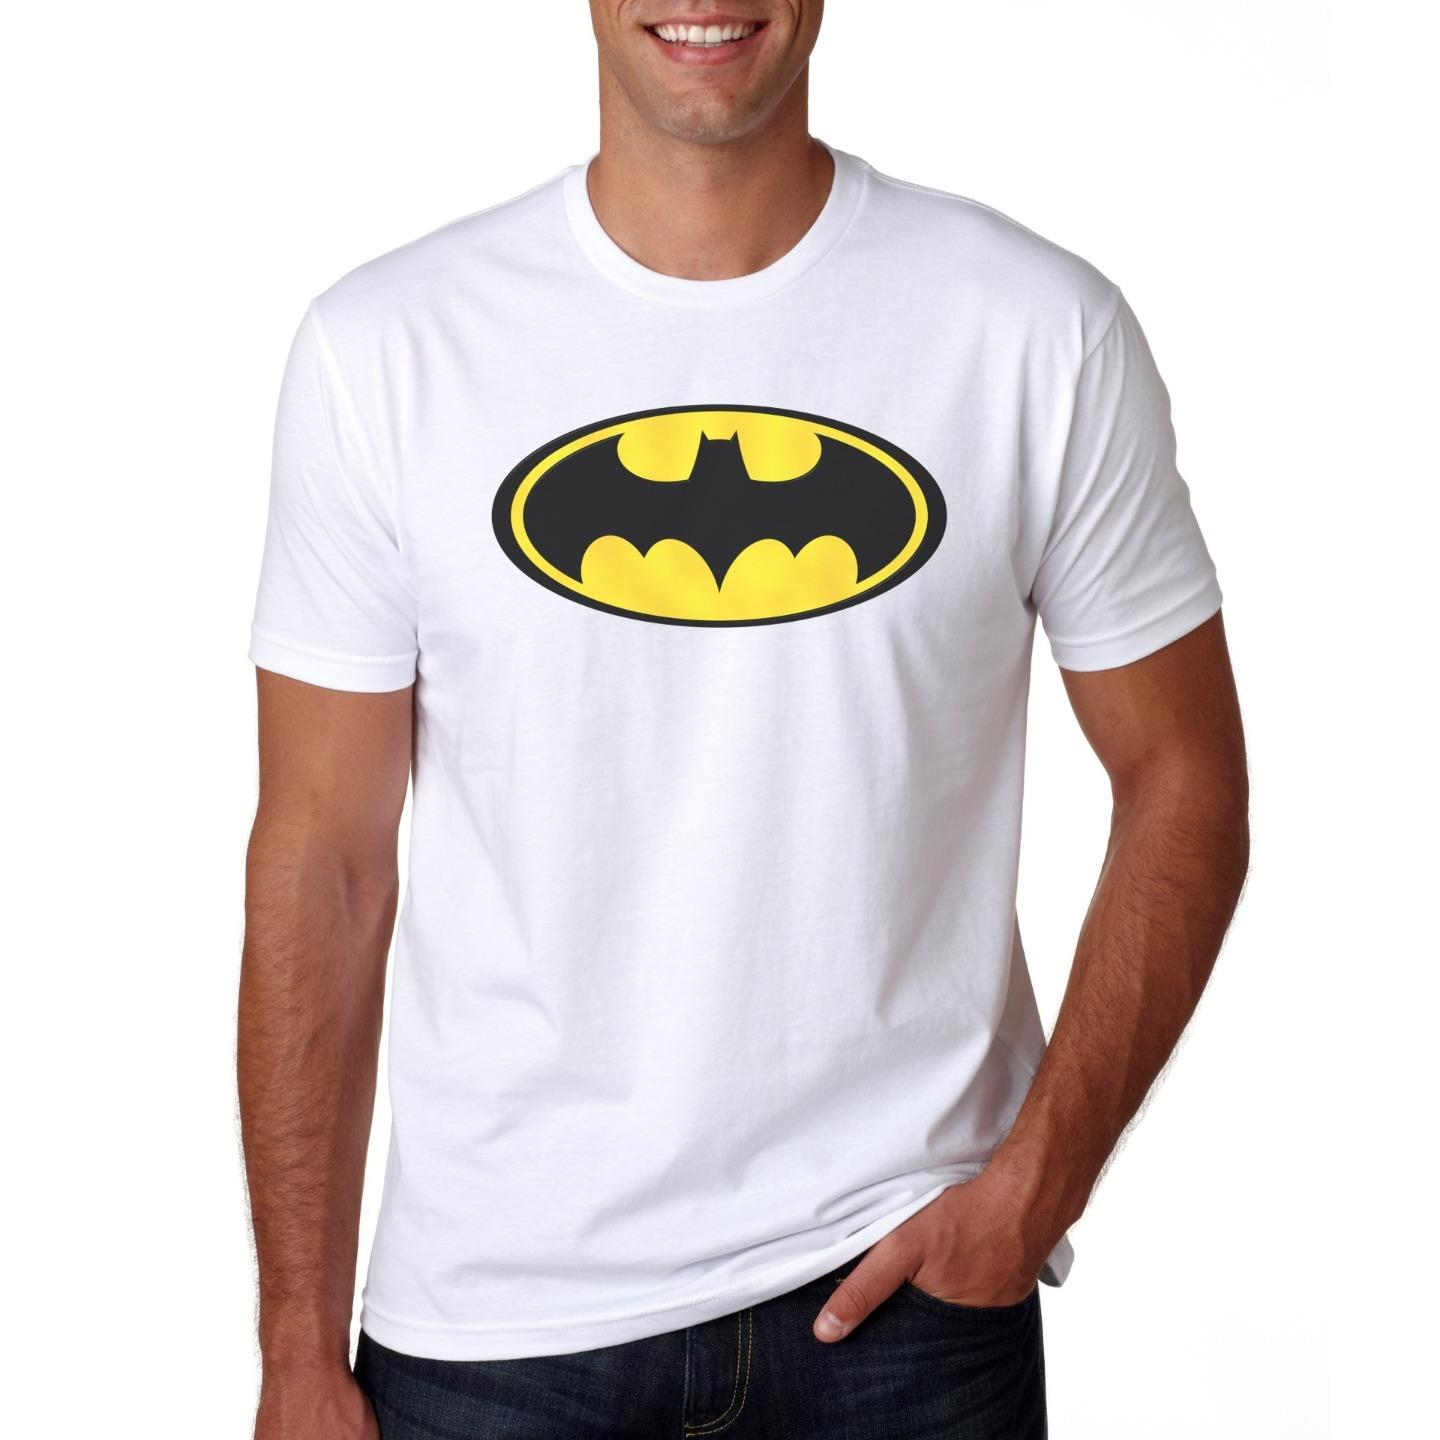 batman logo t-shirt - mens/womens - halloween tshirt birthday